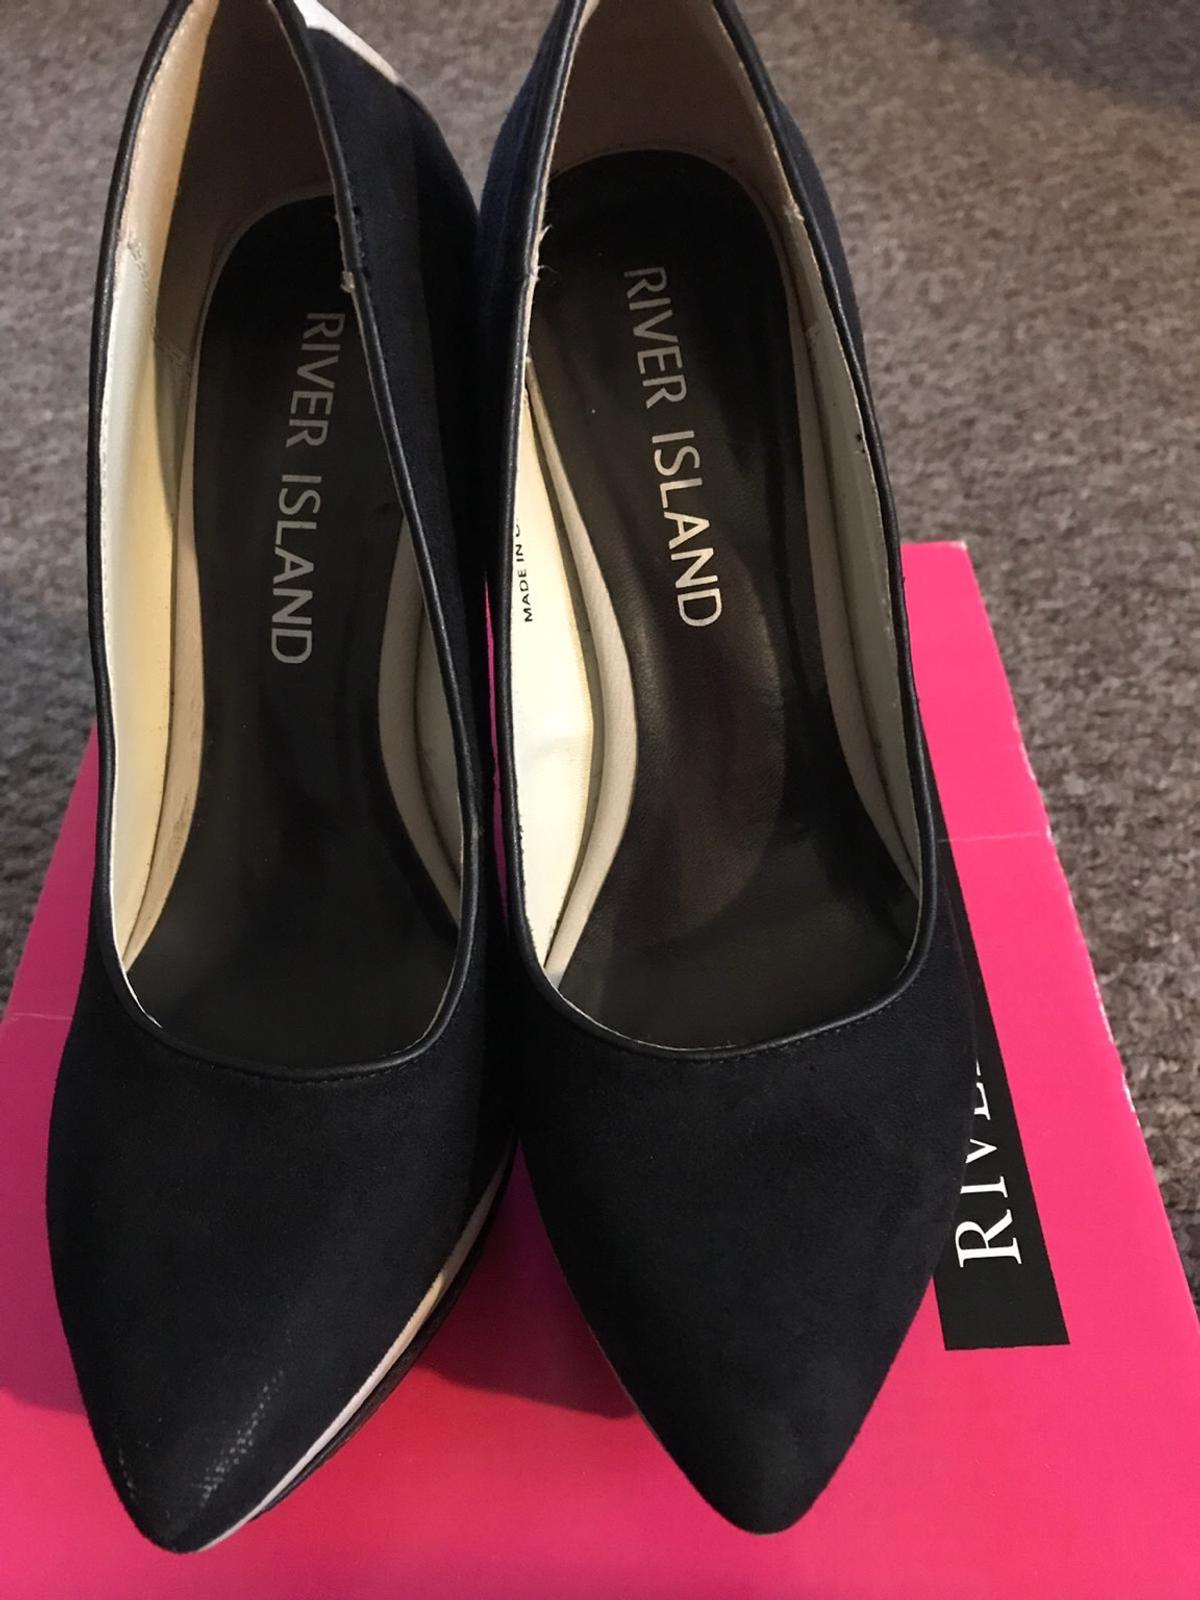 Here I have a pair of River Island size 4 shoes only worn couple of times and been kept in the box.